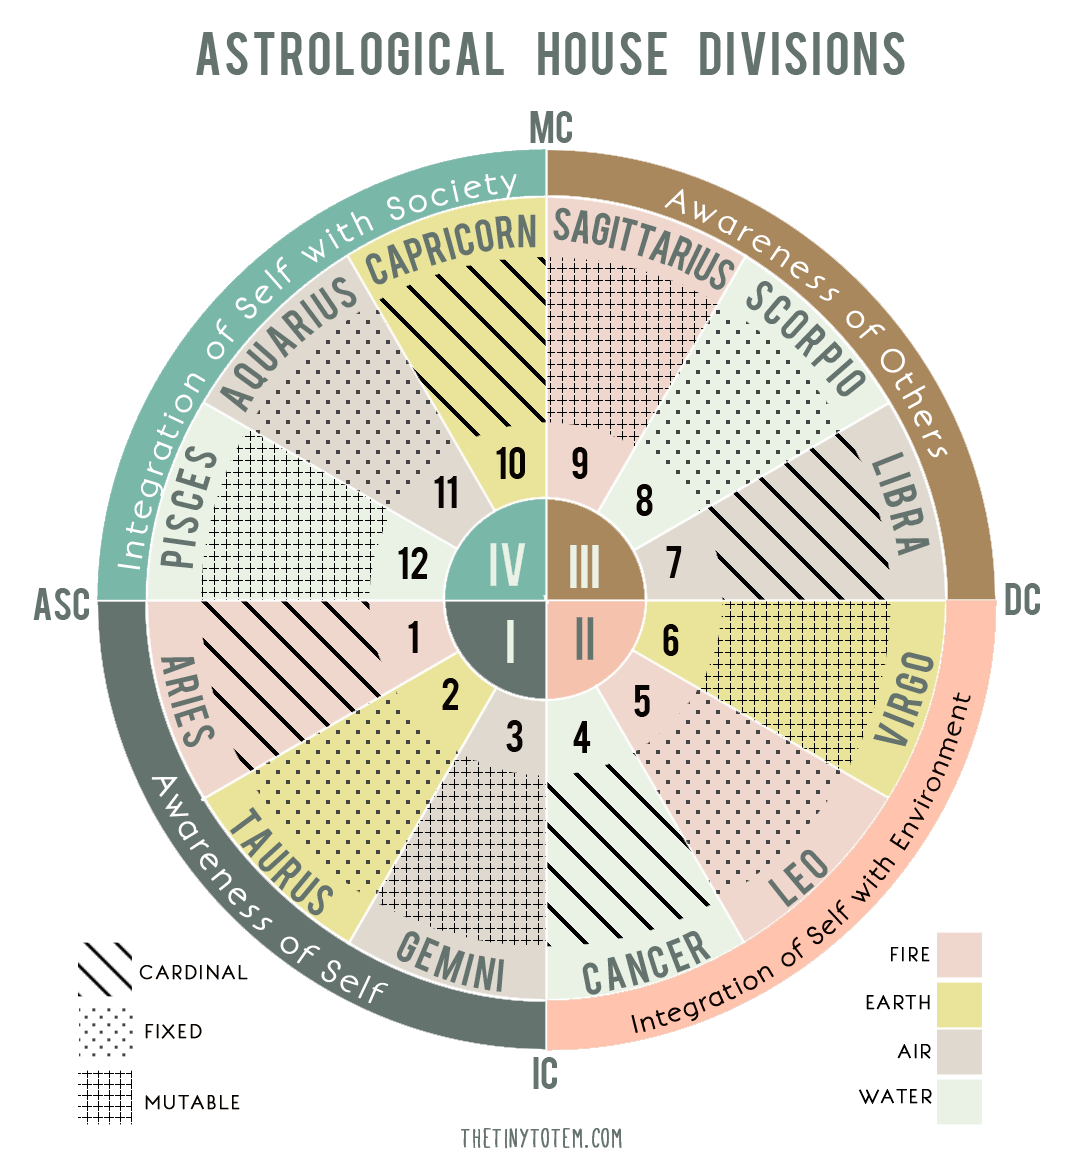 Astrology arena the activities and events of the twelve houses north node evolving as a person and finding true fulfillment through these activities nvjuhfo Images